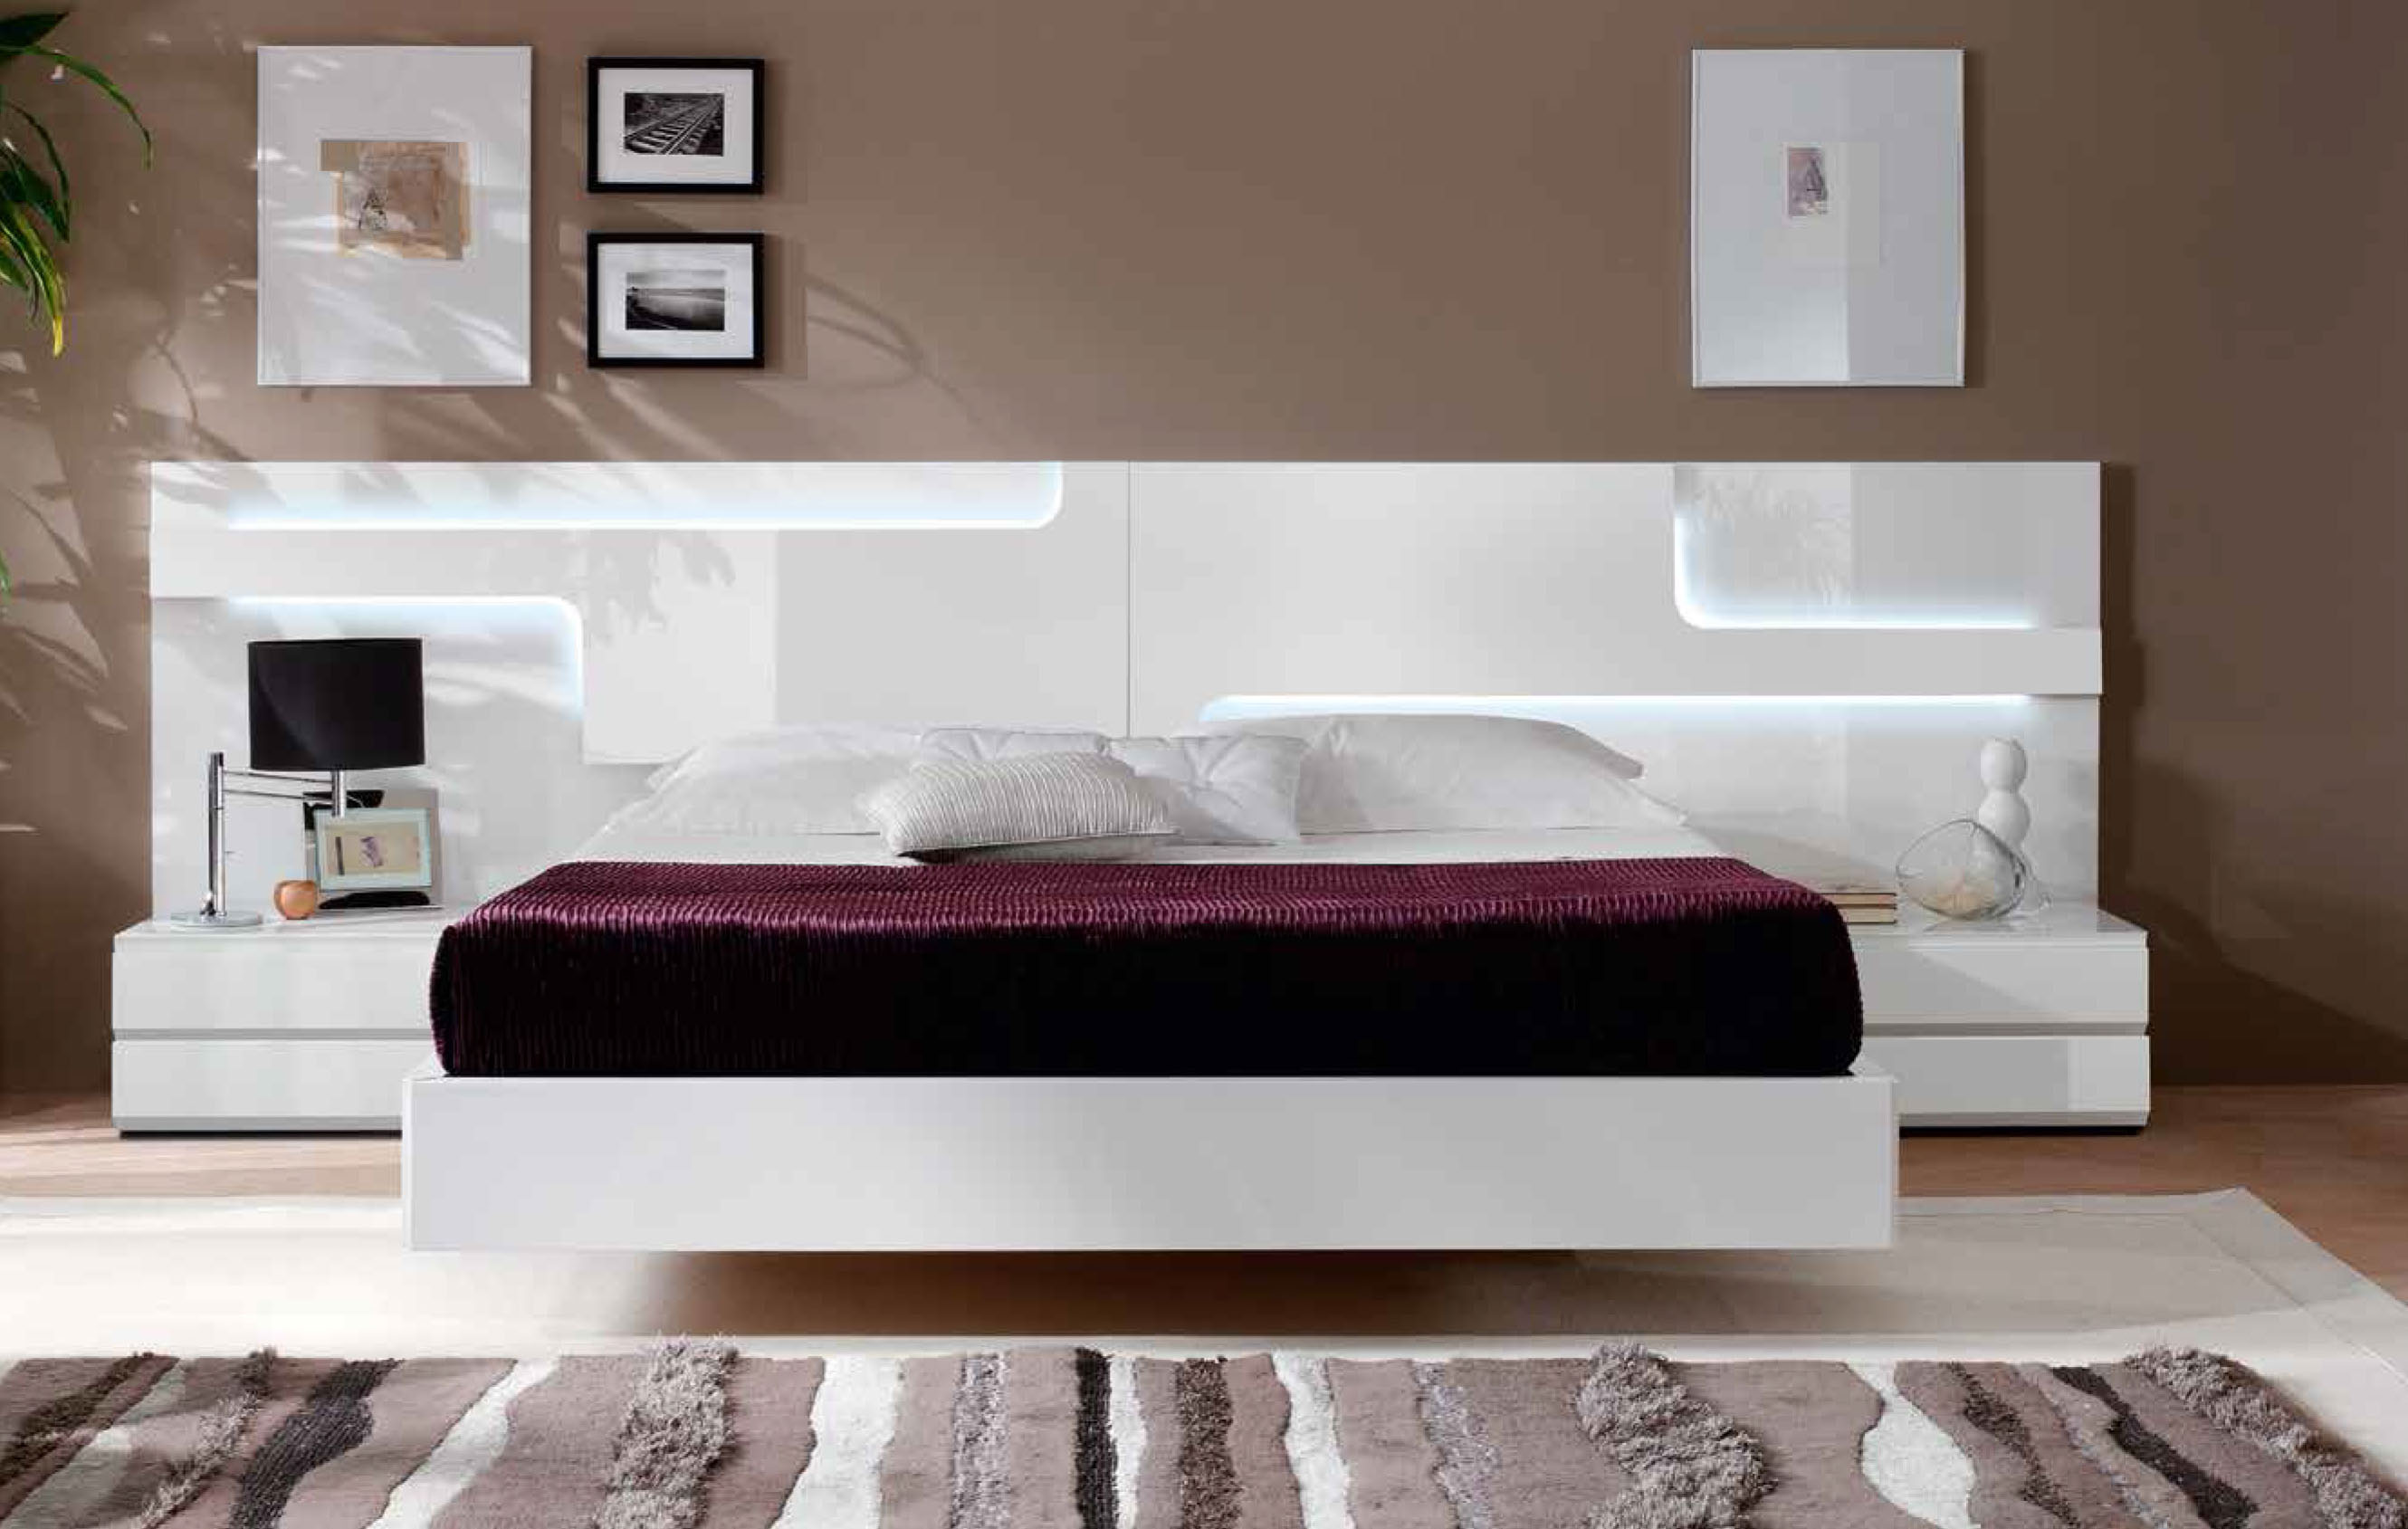 Modern Platform Beds  Master Bedroom Furniture. Lacquered Made in Spain Wood Platform and Headboard Bed with Extra